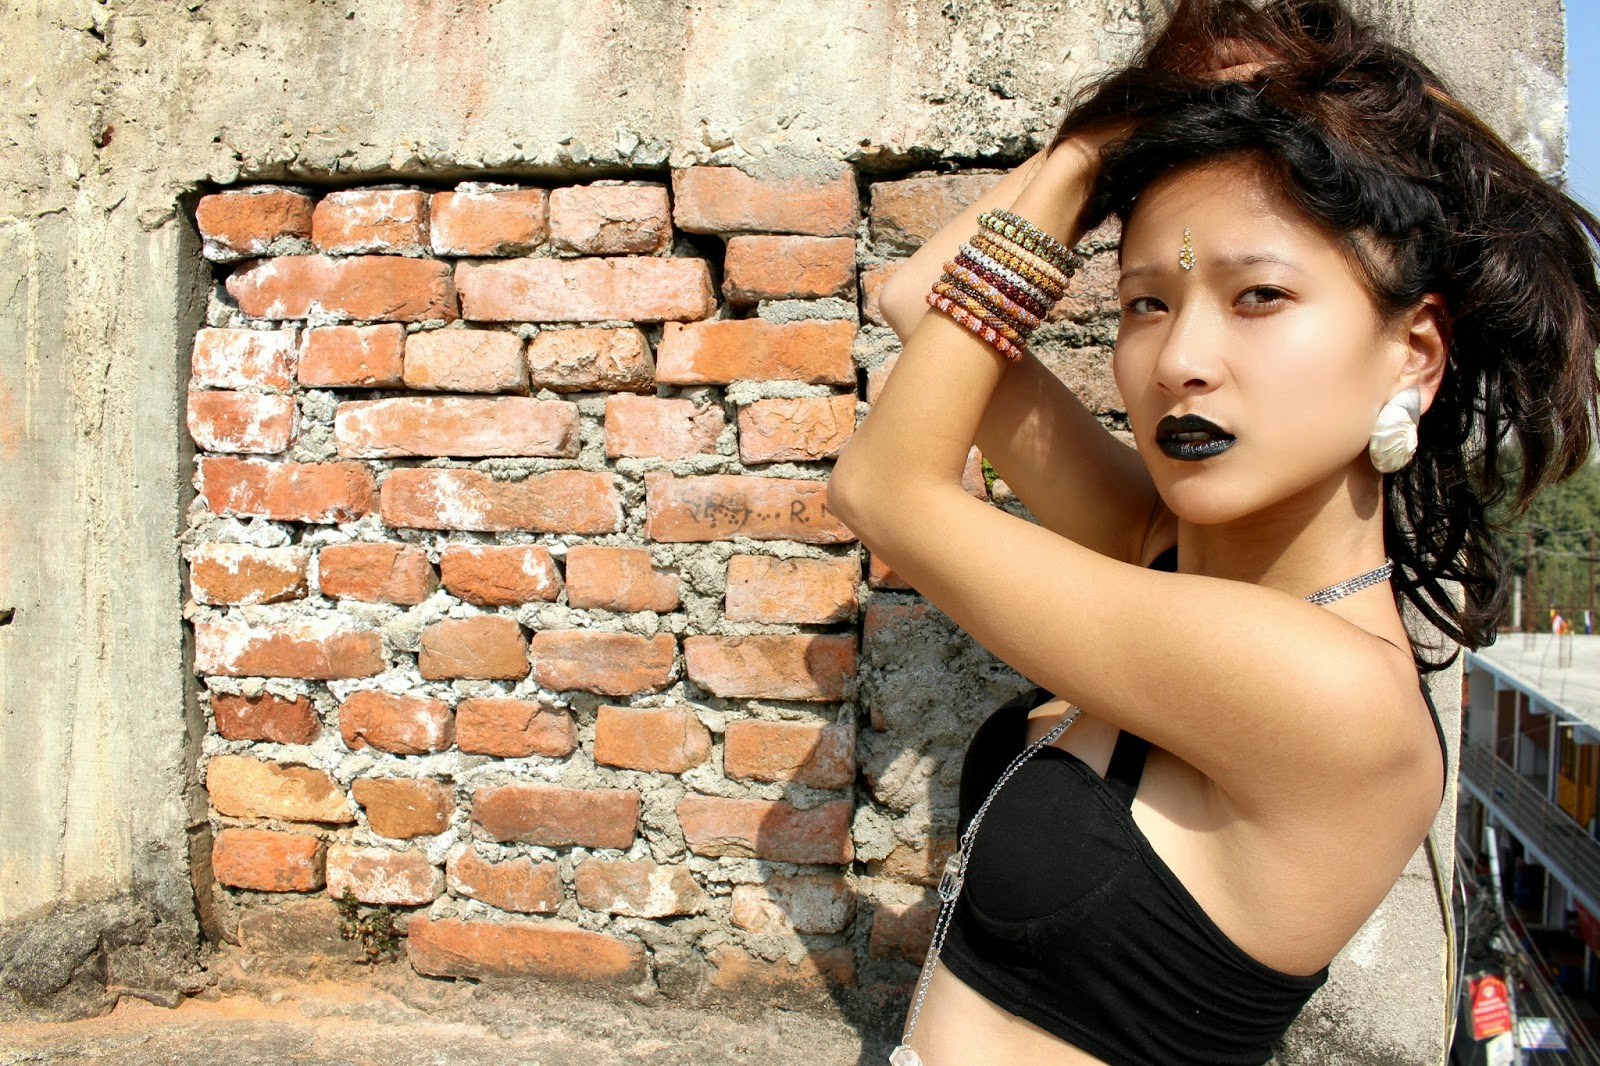 Lotus Sky jewelry, Nepal, black lips, dark fashion, ethnic